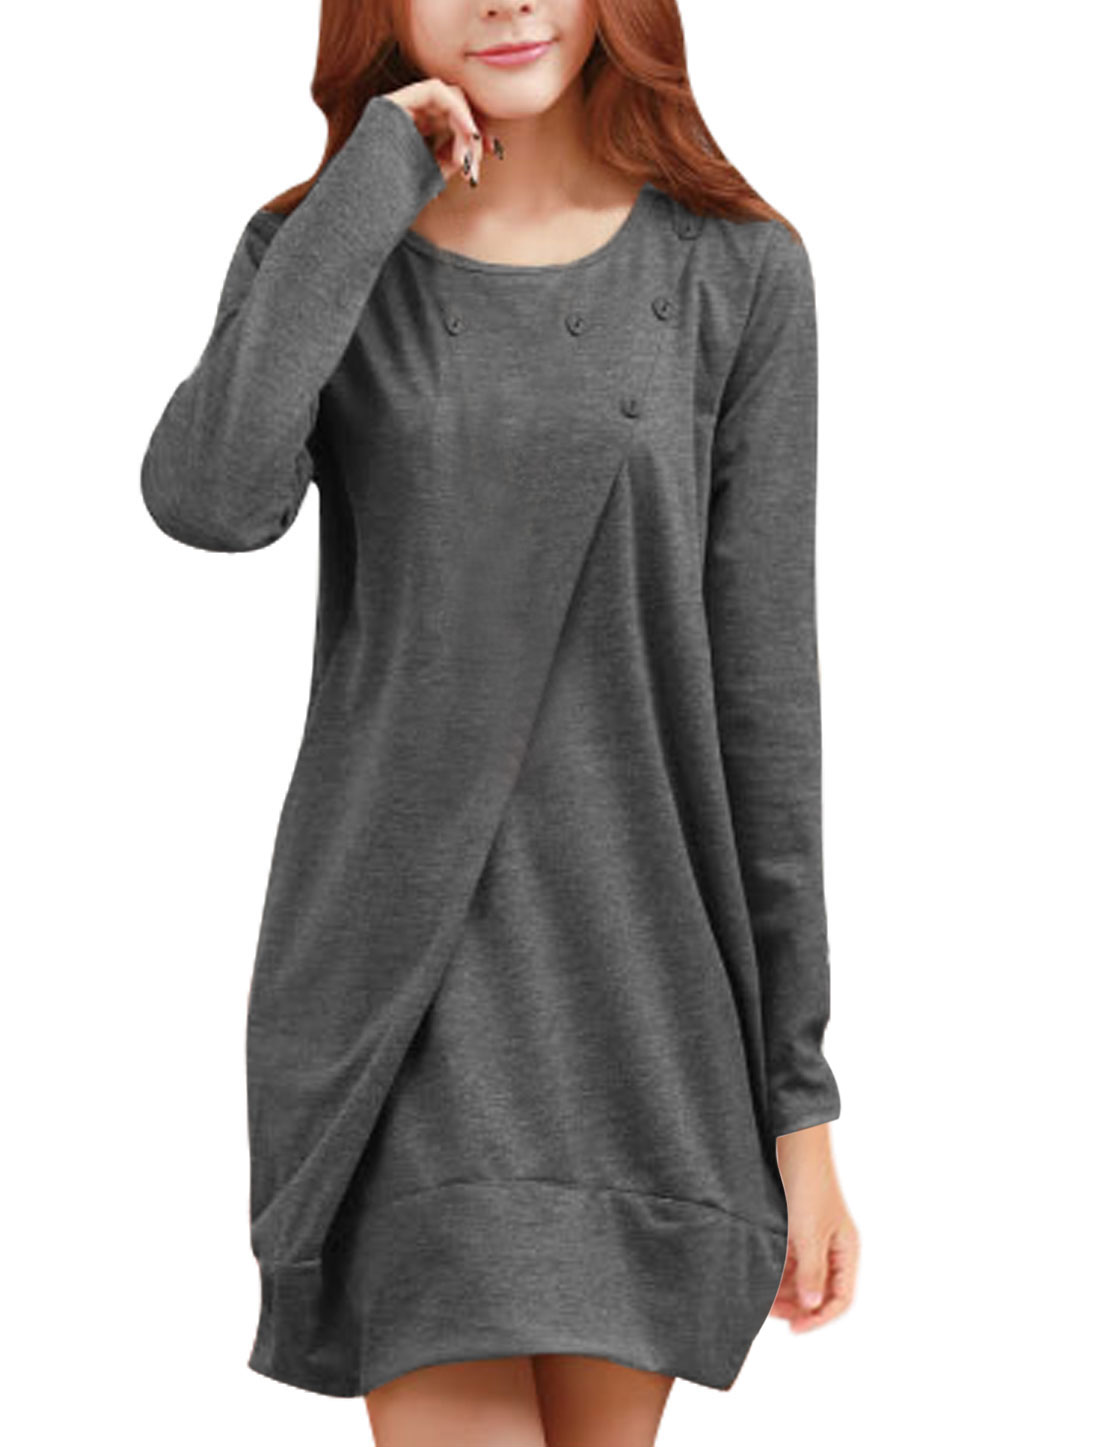 Two Slant Pocket Sides Round Neck Dark Gray Short Dress for Lady M